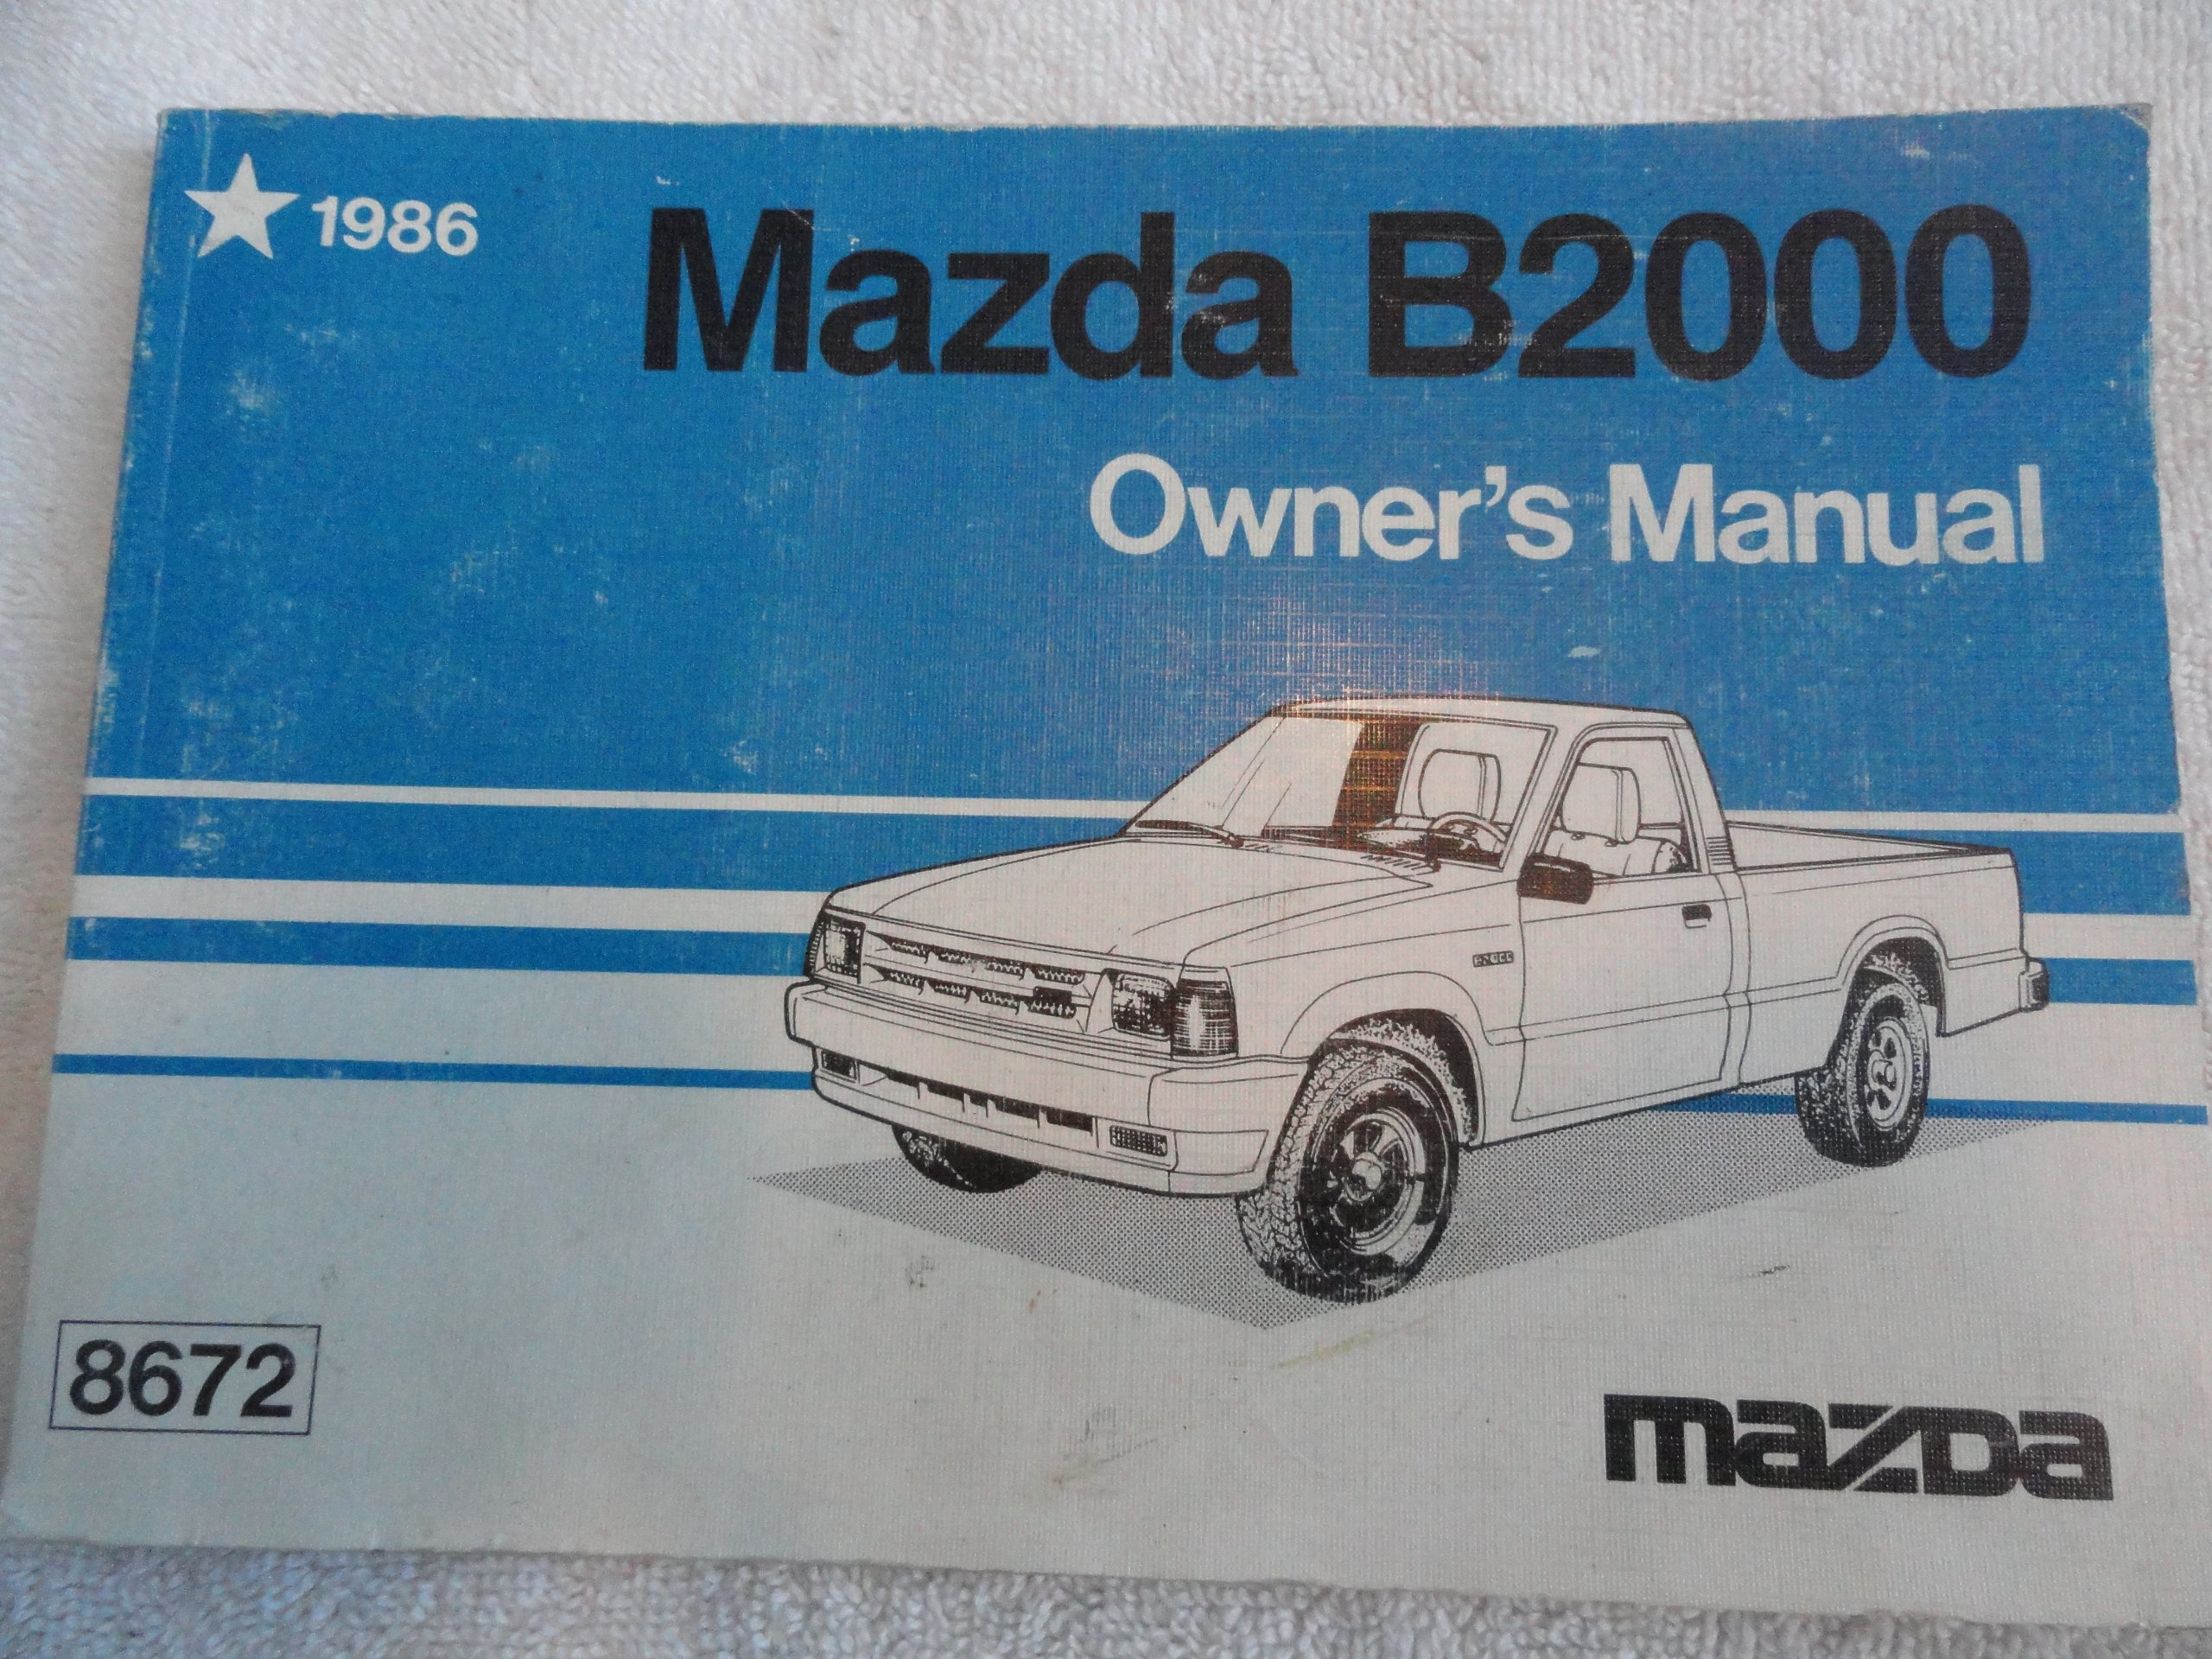 1986 mazda b2000 truck owner s manual amazon com books rh amazon com 1986 mazda b2000 manual transmission 1986 mazda b2000 manual mpg